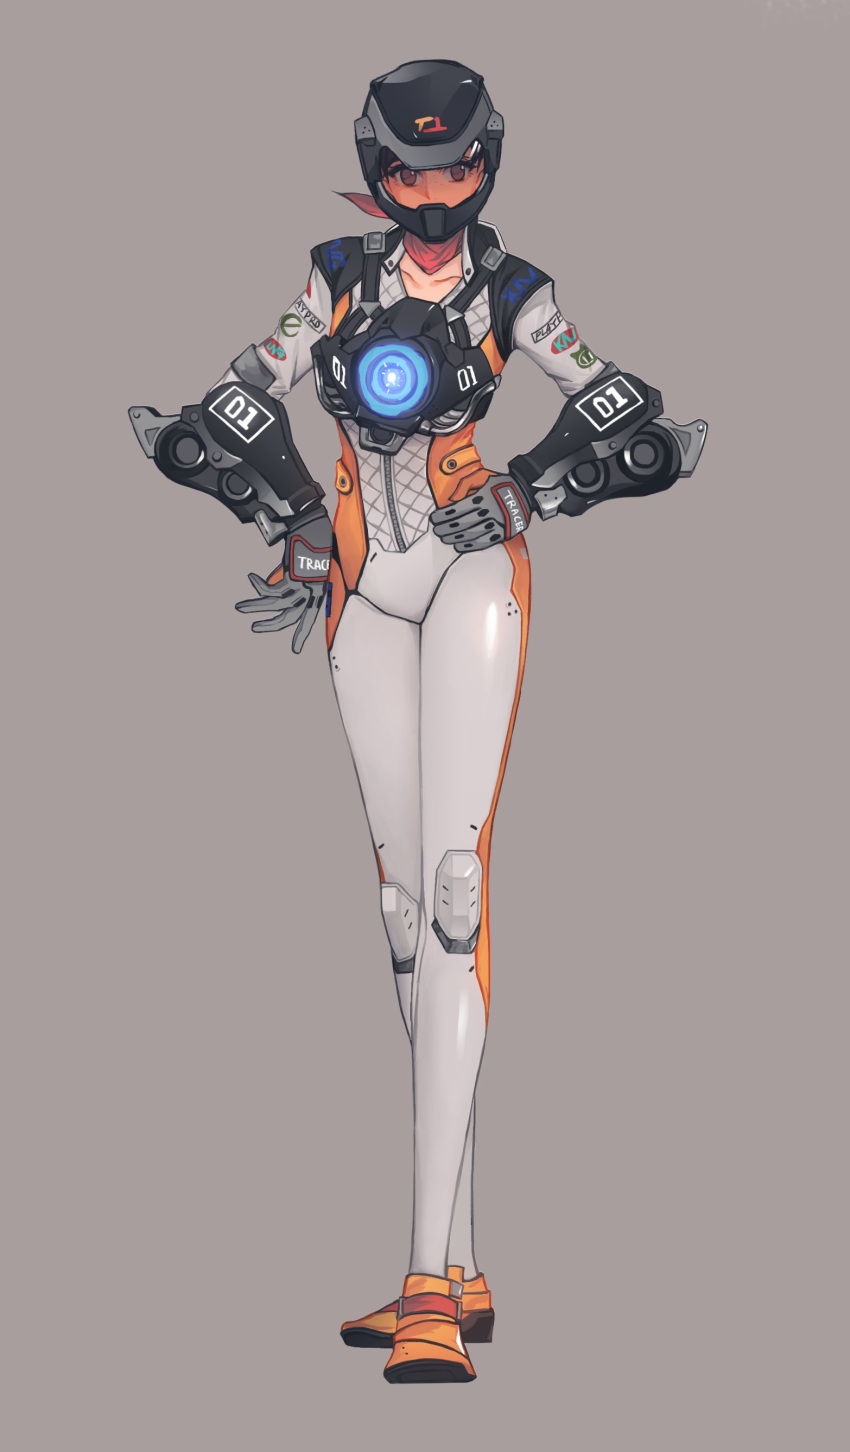 1girl absurdres alternate_costume biker_clothes bikesuit bodysuit character_name clothes_writing collarbone emblem gloves grey_gloves hands_on_hips harness helmet highres knee_pads logo long_sleeves looking_at_viewer mach_t_(overwatch) neosnim overwatch red_scarf scarf shoes simple_background solo standing strap tracer_(overwatch) vambraces yellow_shoes